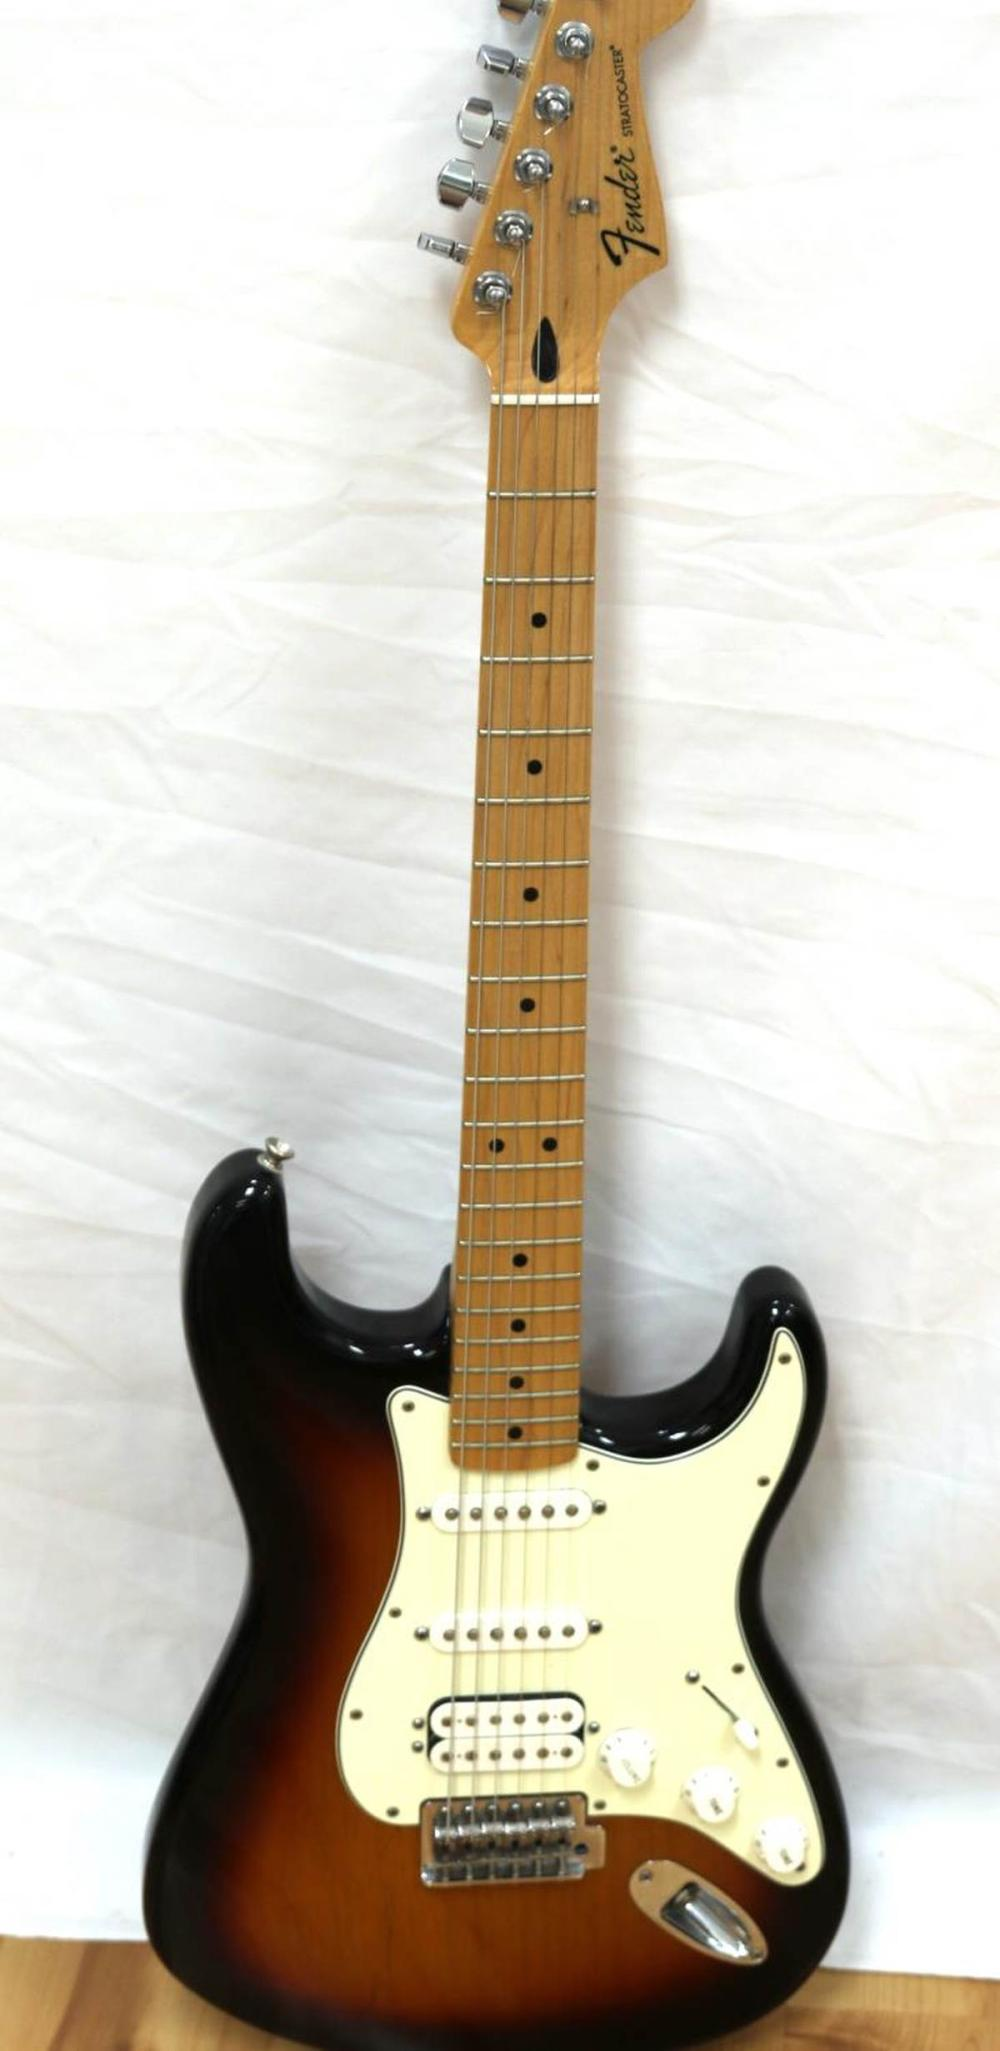 FENDER STRATOCASTER MADE IN MEXICO ELECTRIC GUITAR